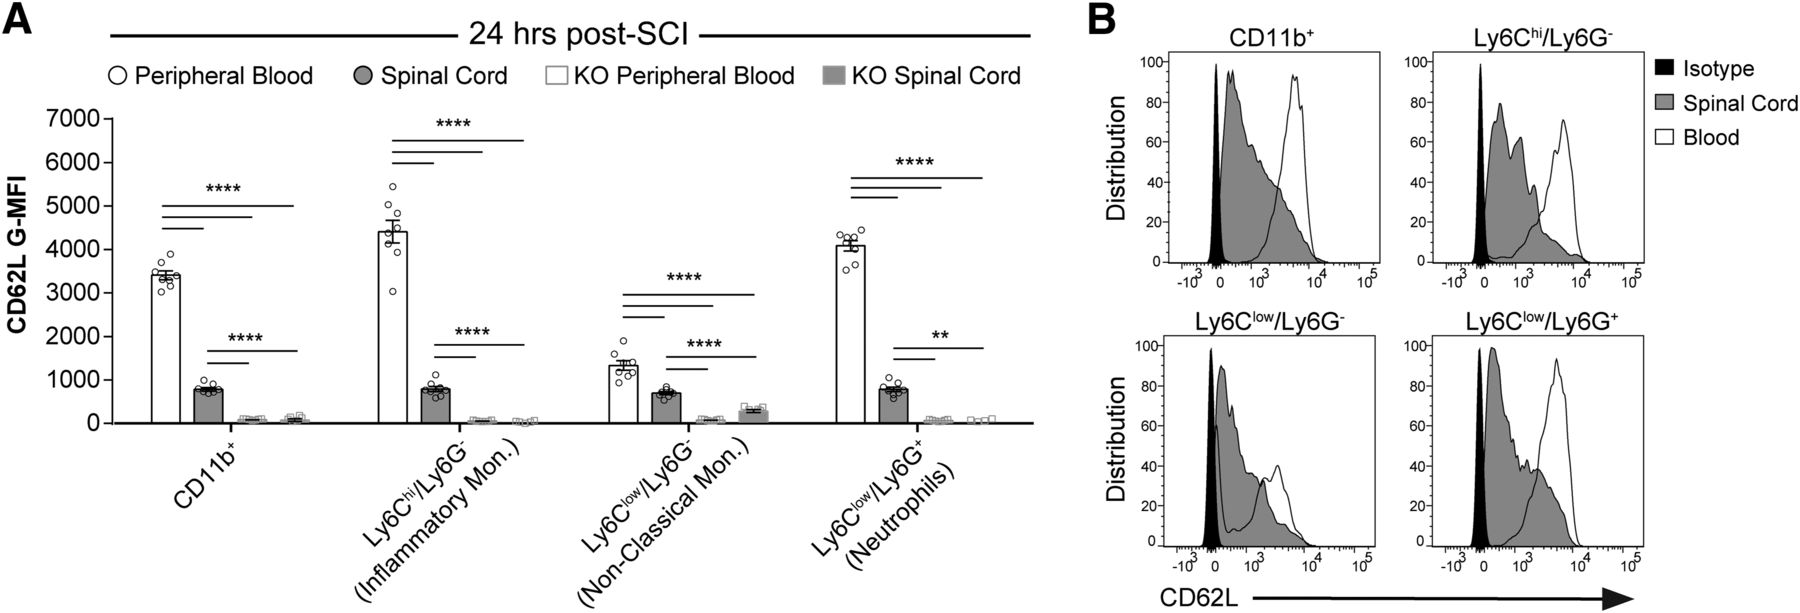 Early Targeting of L-Selectin on Leukocytes Promotes